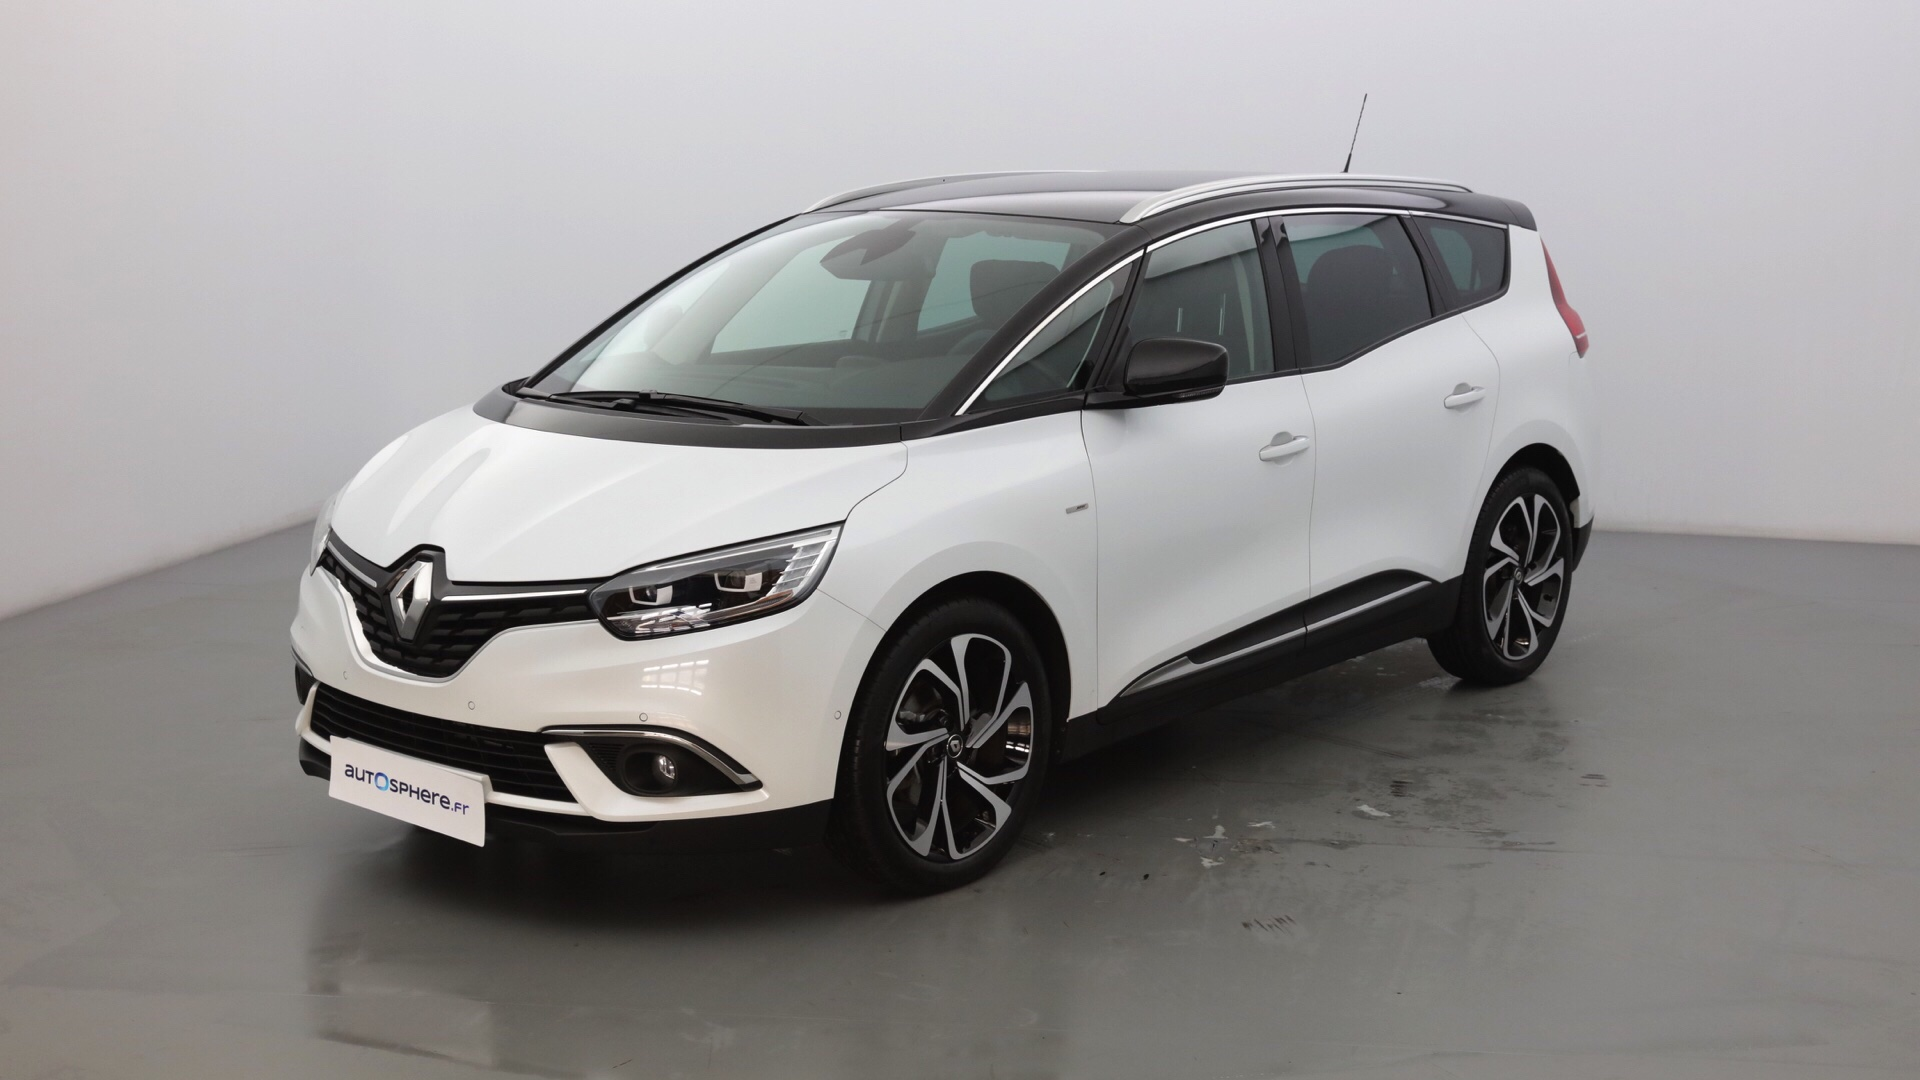 RENAULT GRAND SCENIC 1.3 TCE 140CH ENERGY INTENS - Photo 1